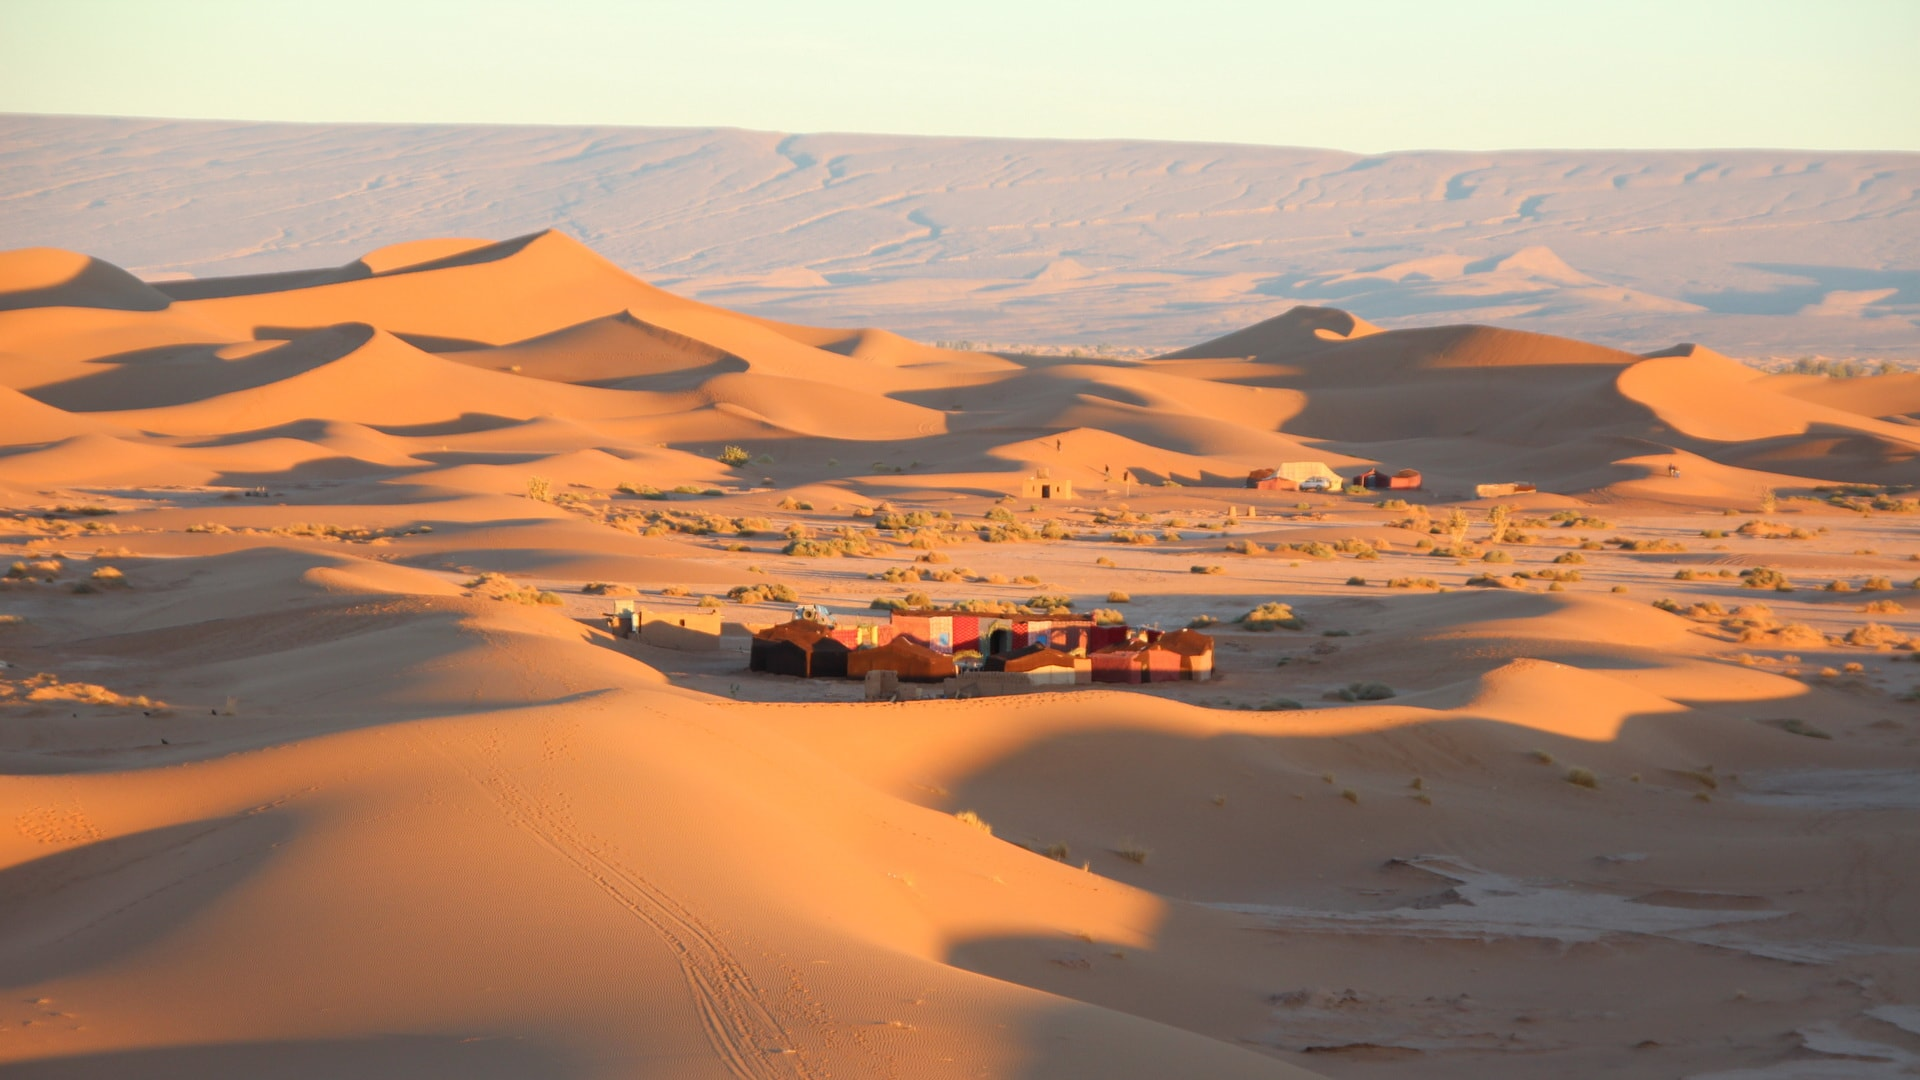 Pathfinders treks - 4 days 3 nights morocco desert 4 wd safari tour 01